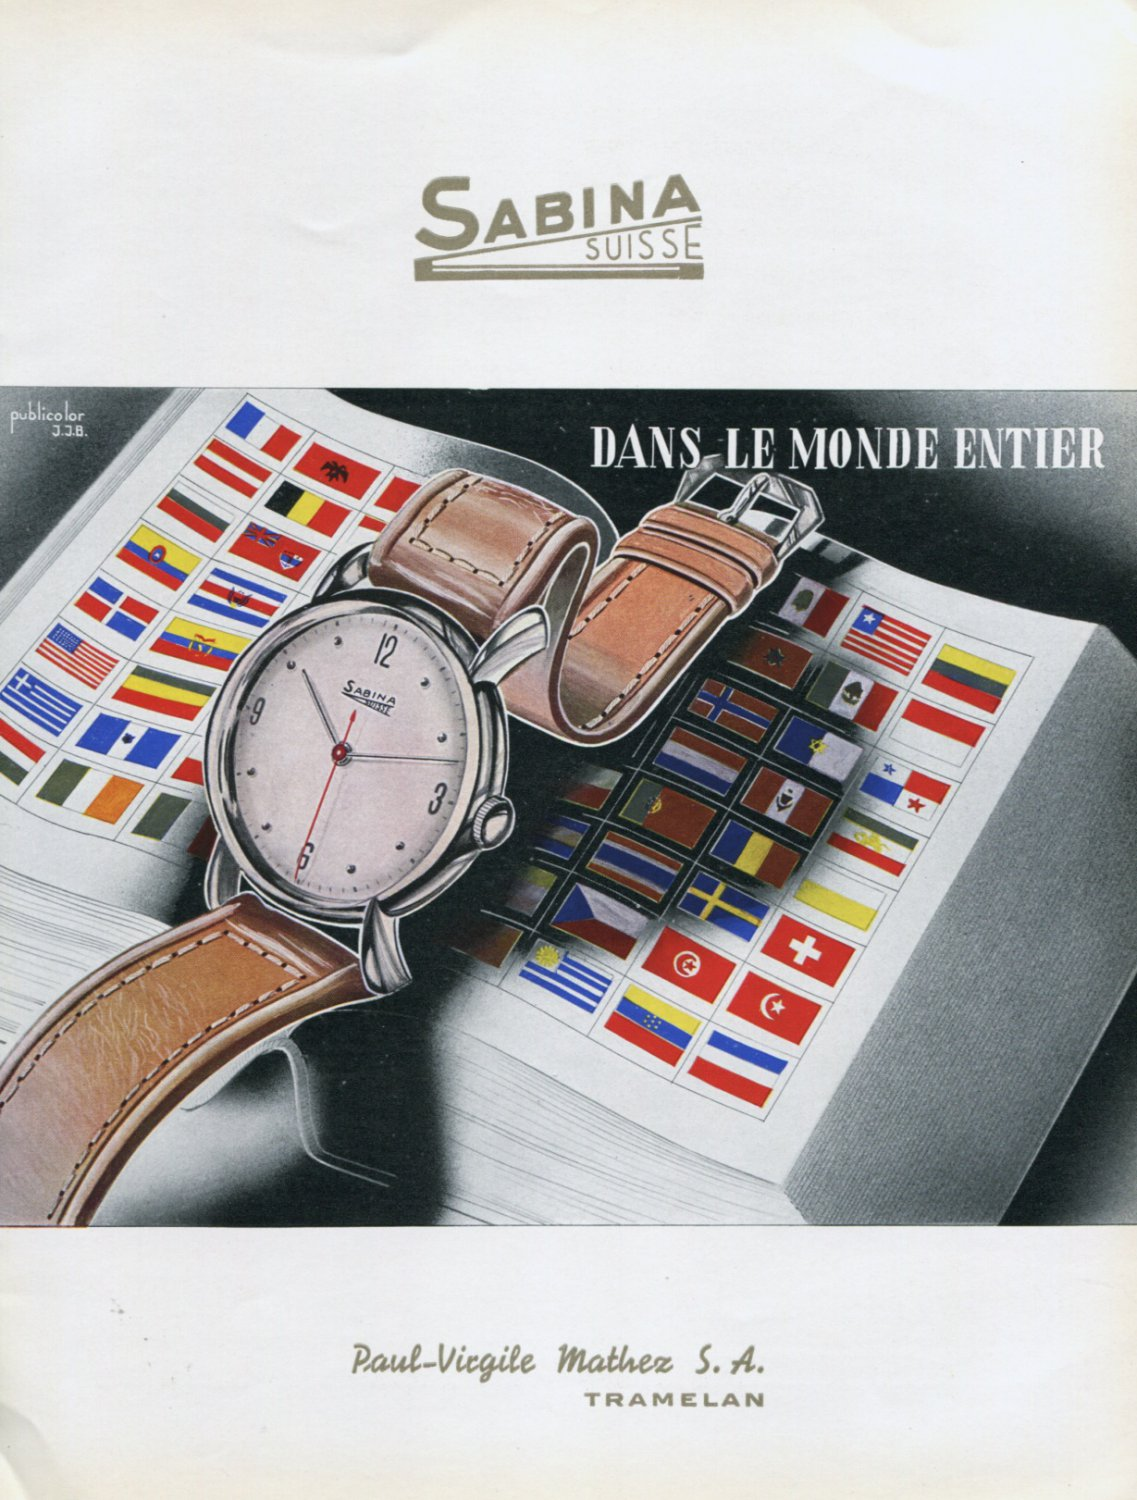 1947 Sabina Watch Company Paul-Virgile Mather SA Switzerland Vintage 1947 Swiss Ad Advert Suisse